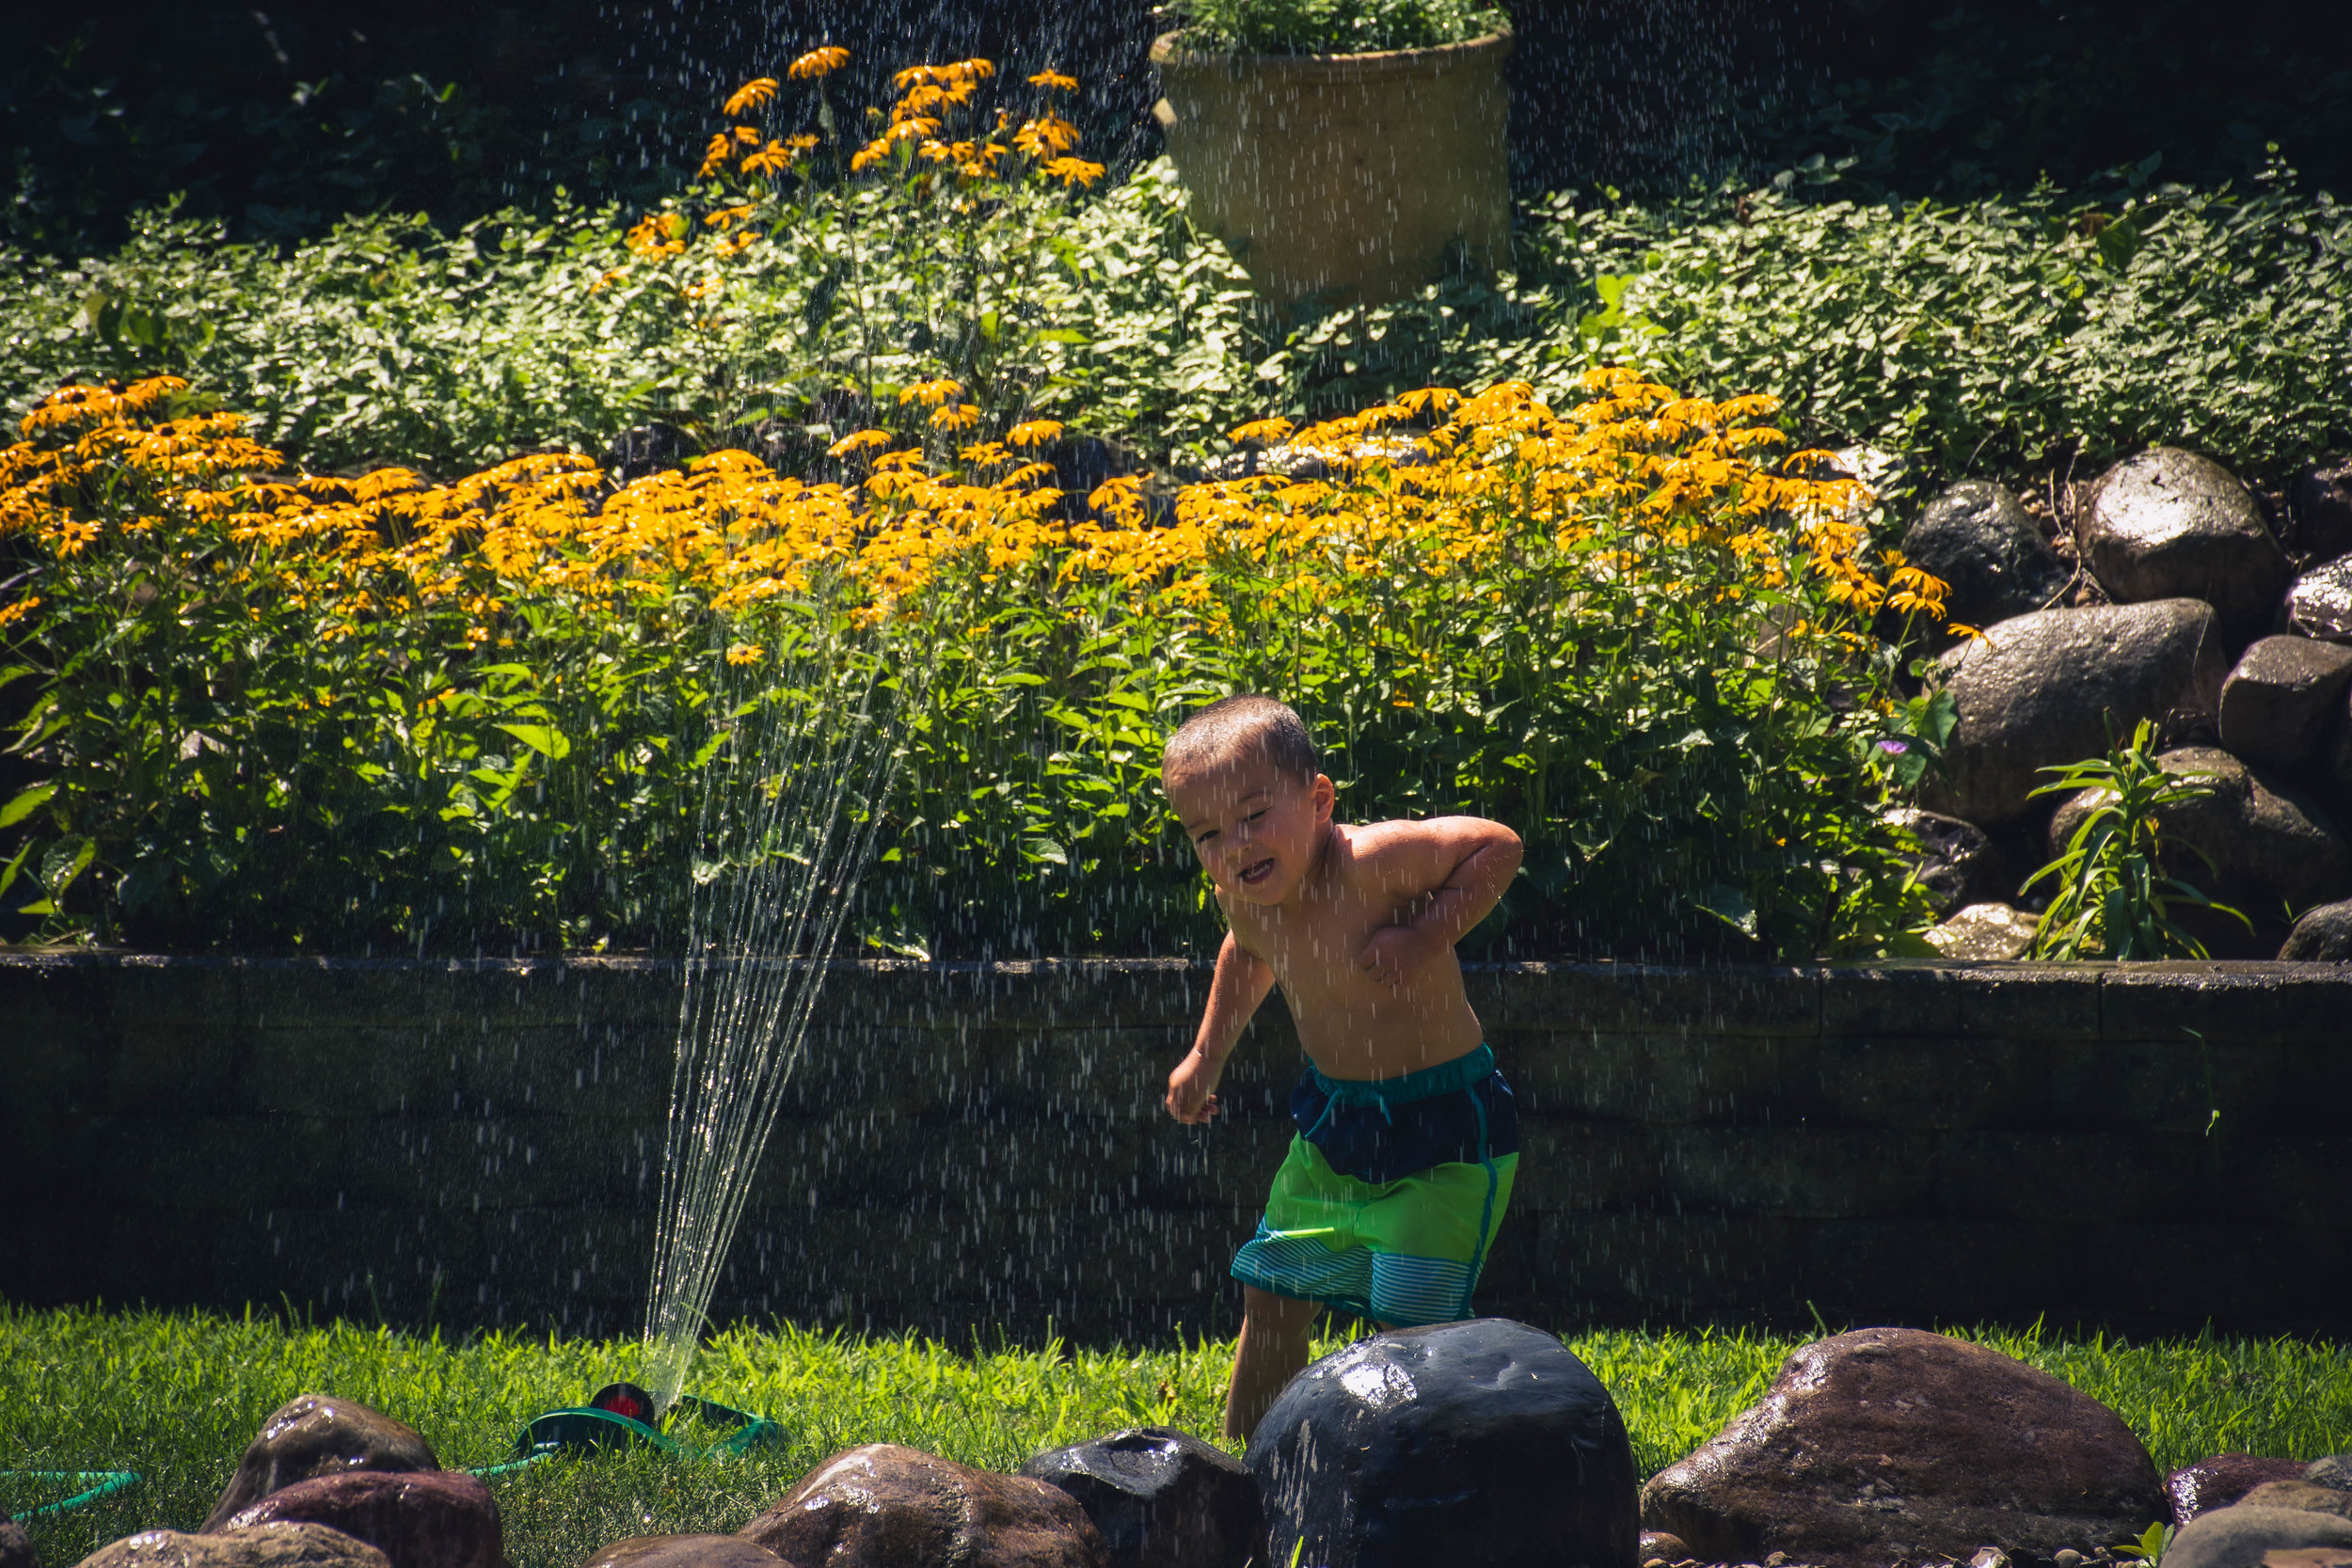 …..and just some good old fashioned back yard fun in the sprinkler.